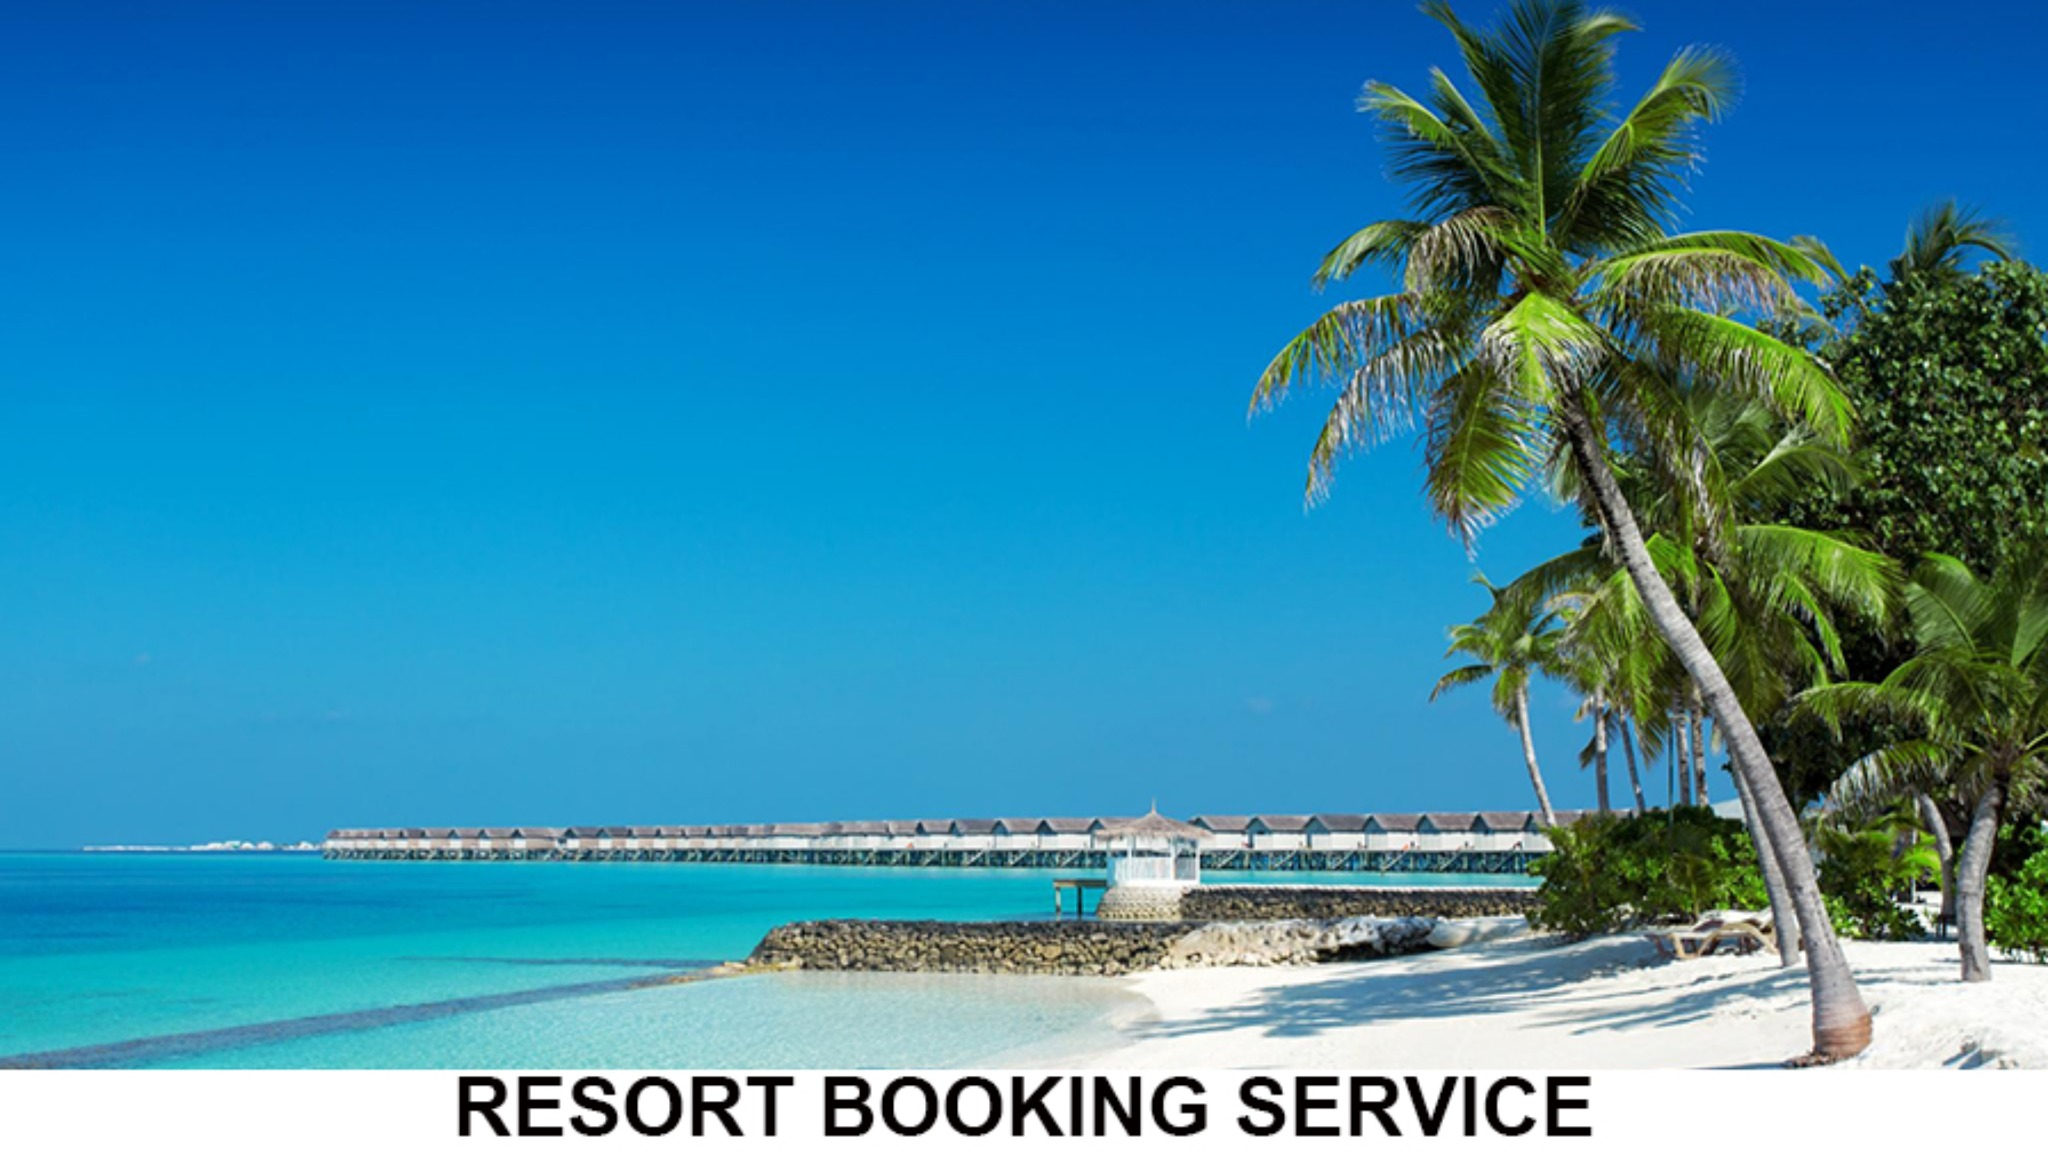 Resort Booking - Domestic, Caribbean, Mexico